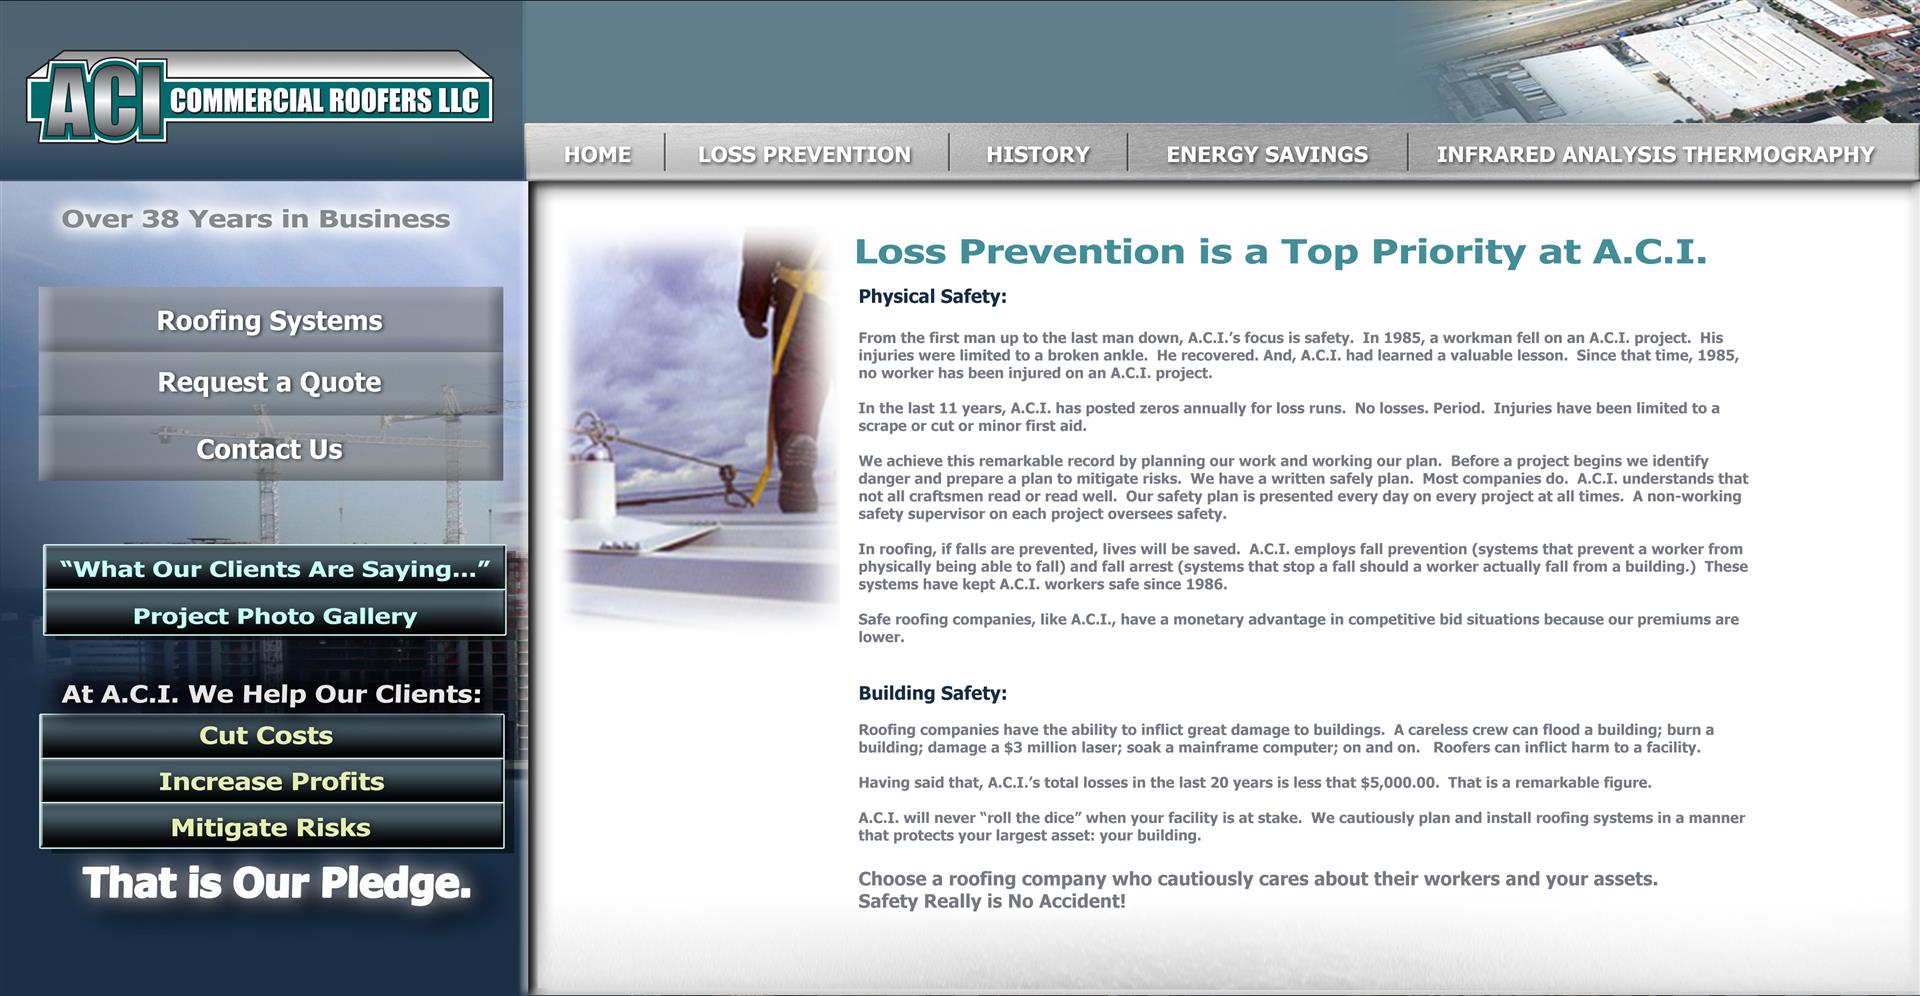 A.C.I. Loss Prevention